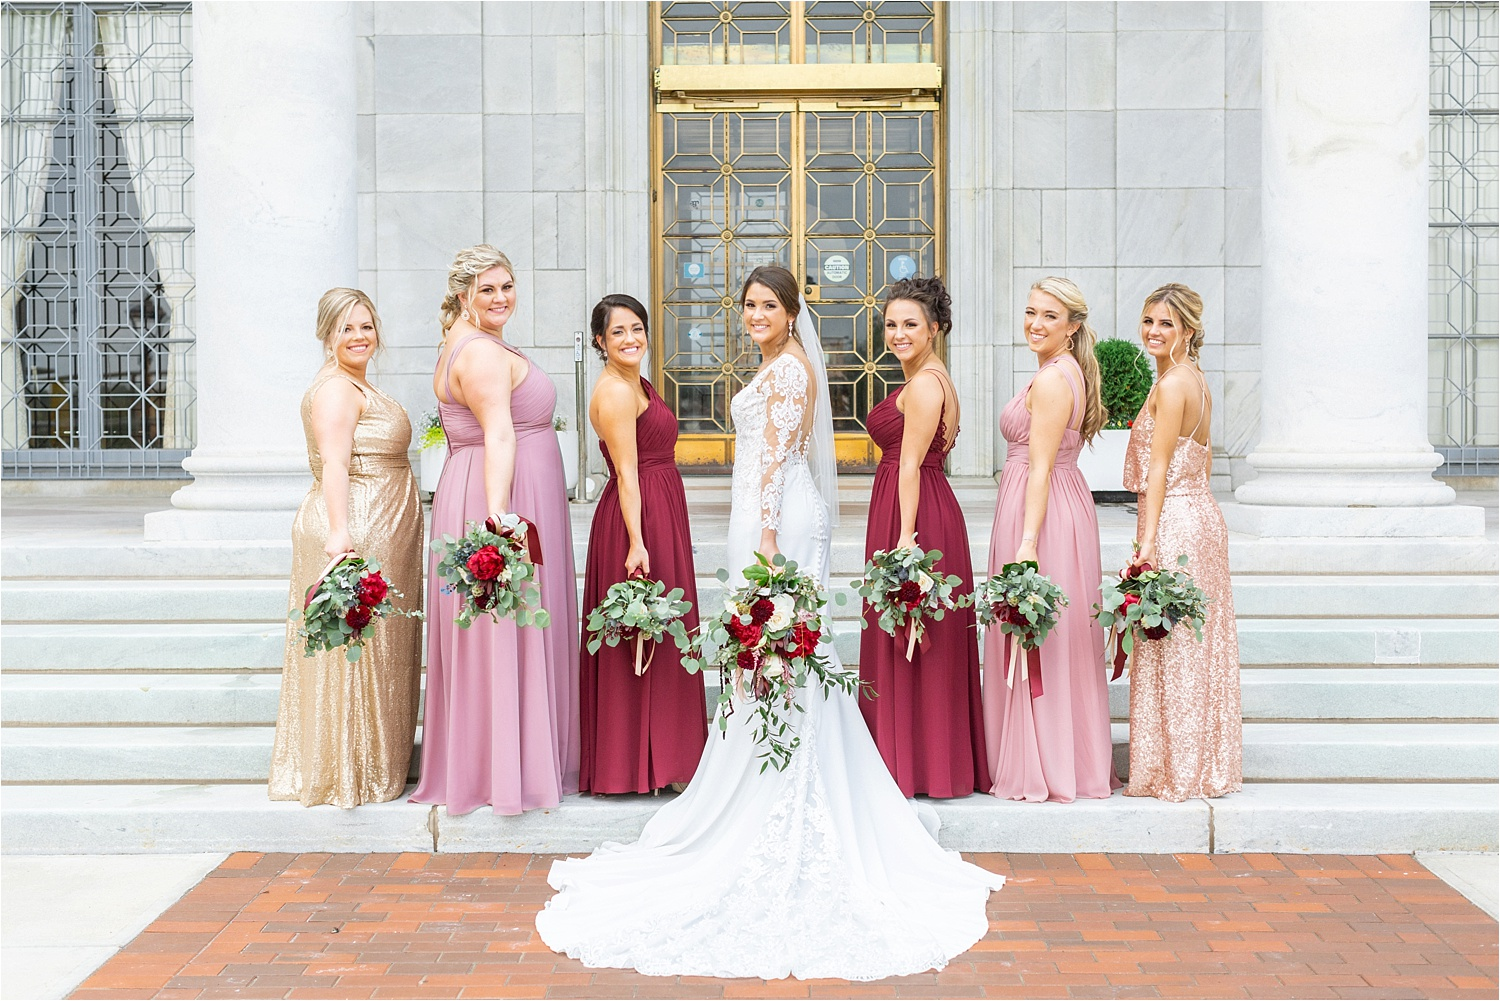 gorgeous light, bright and airy bridesmaids photos at the butler institute of american art